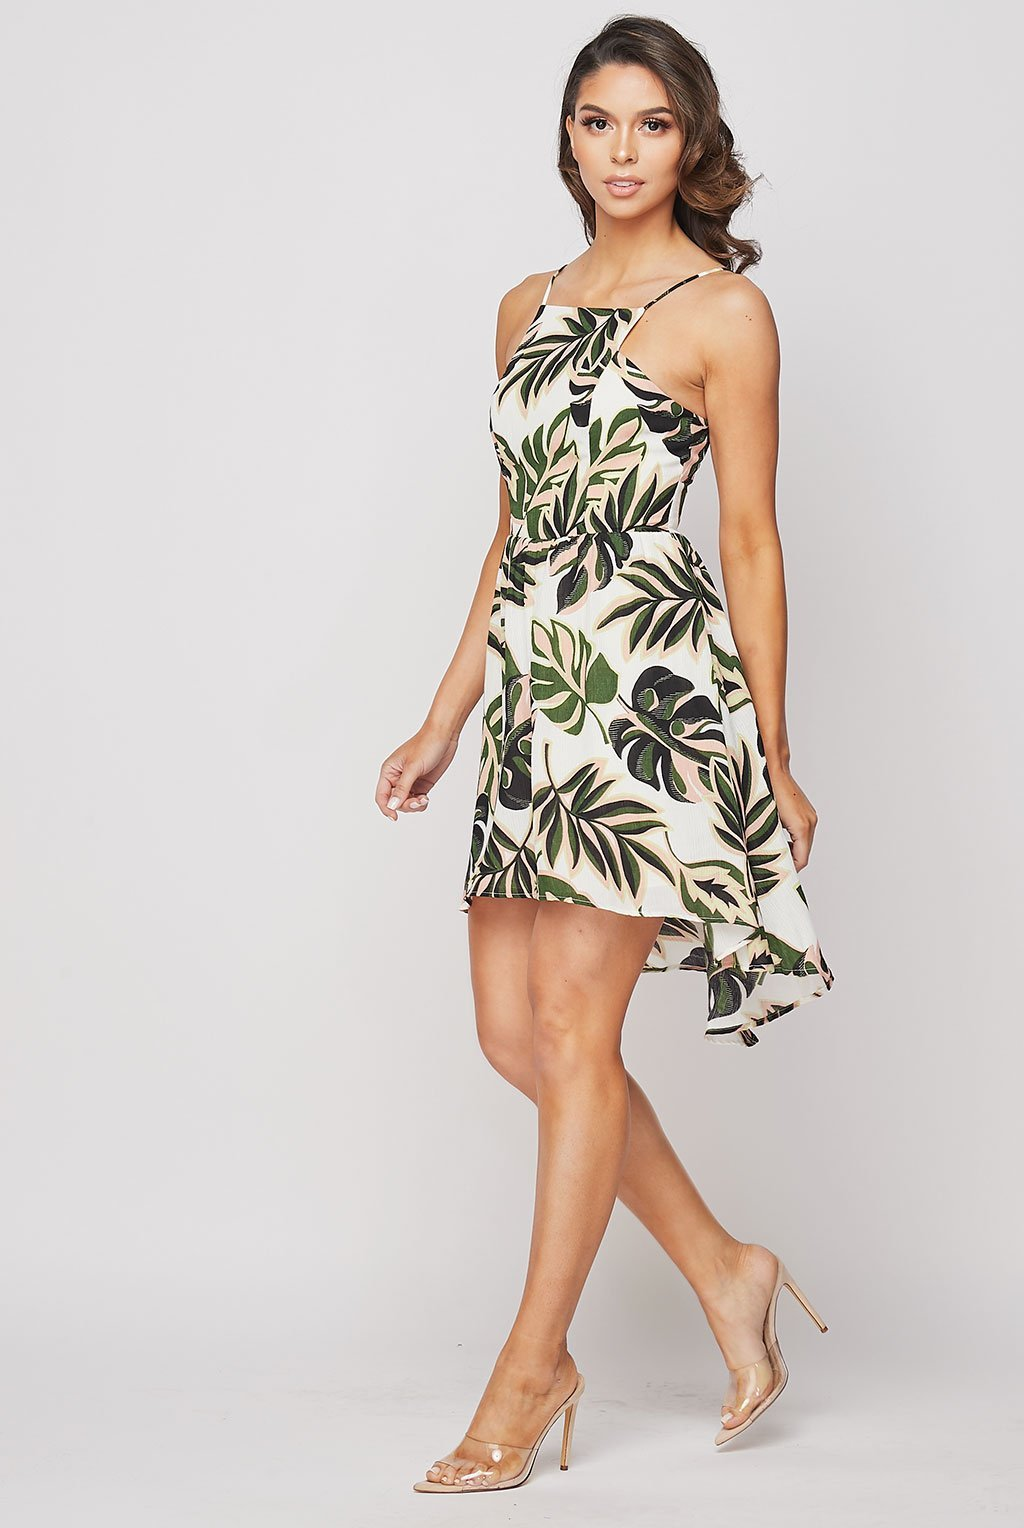 Teeze Me | Tropical Foliage Printed Dress | Off White/Green